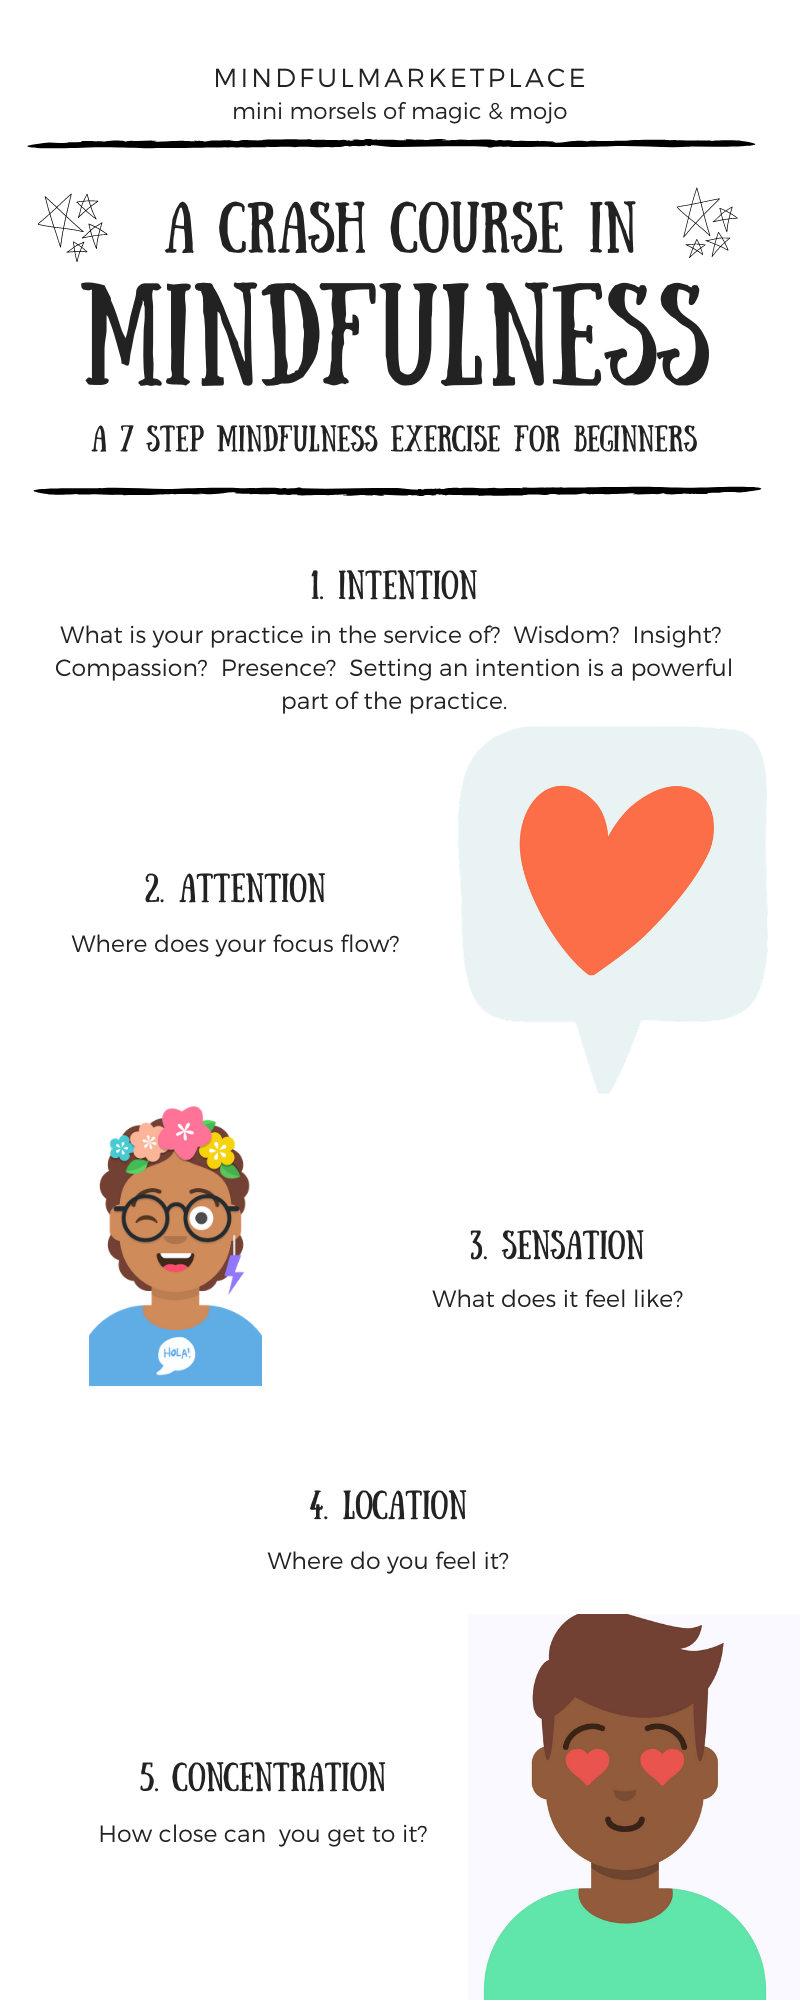 So You Want to Meditate?  A Powerful 6 Step Mindfulness Practice for Beginners, Believers & the Curious but not yet Convinced